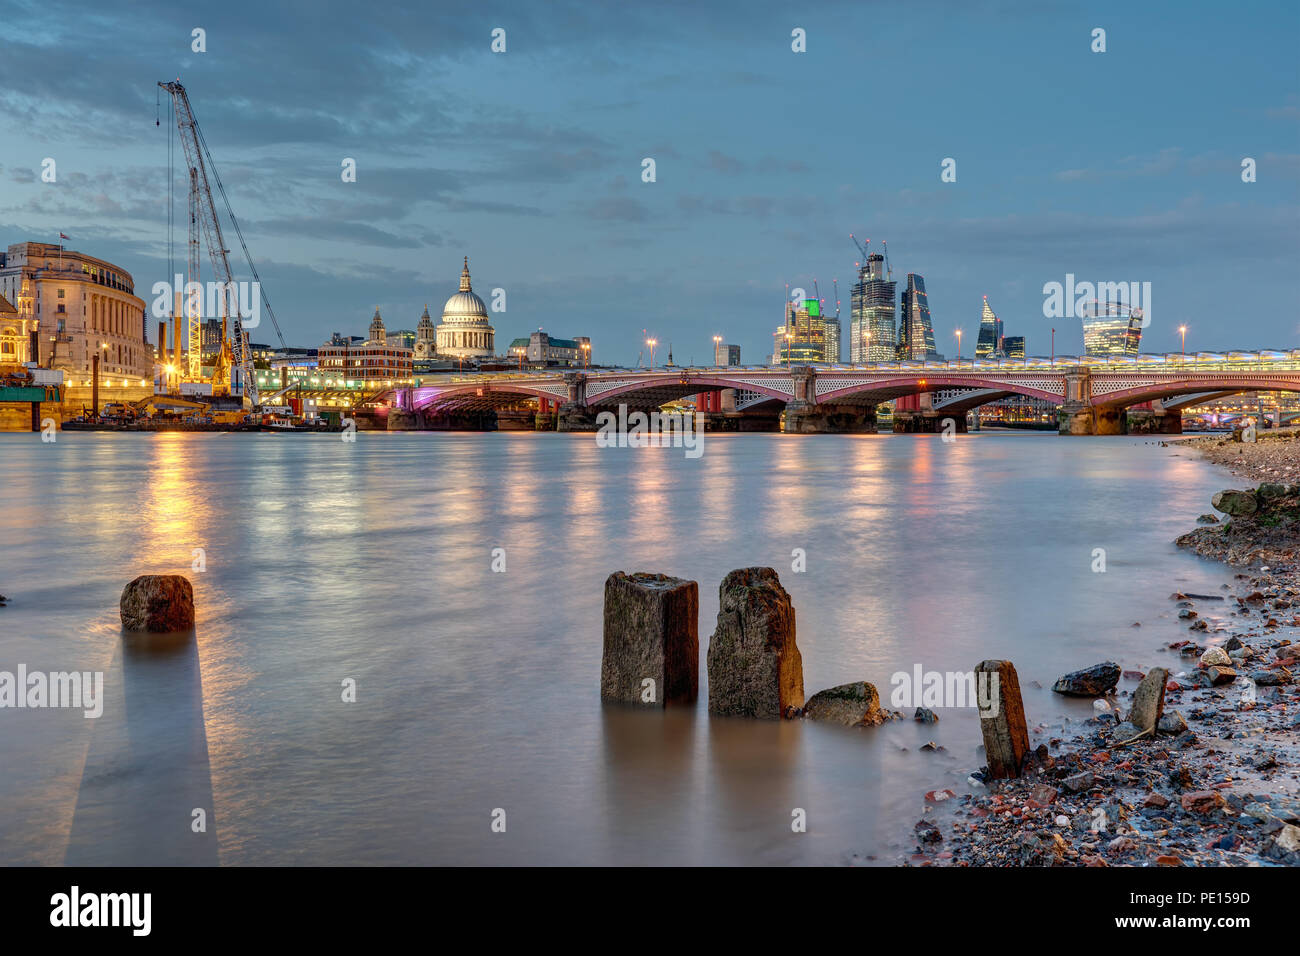 St Pauls cathedral, Blackfriars Bridge and the City of London at dusk - Stock Image